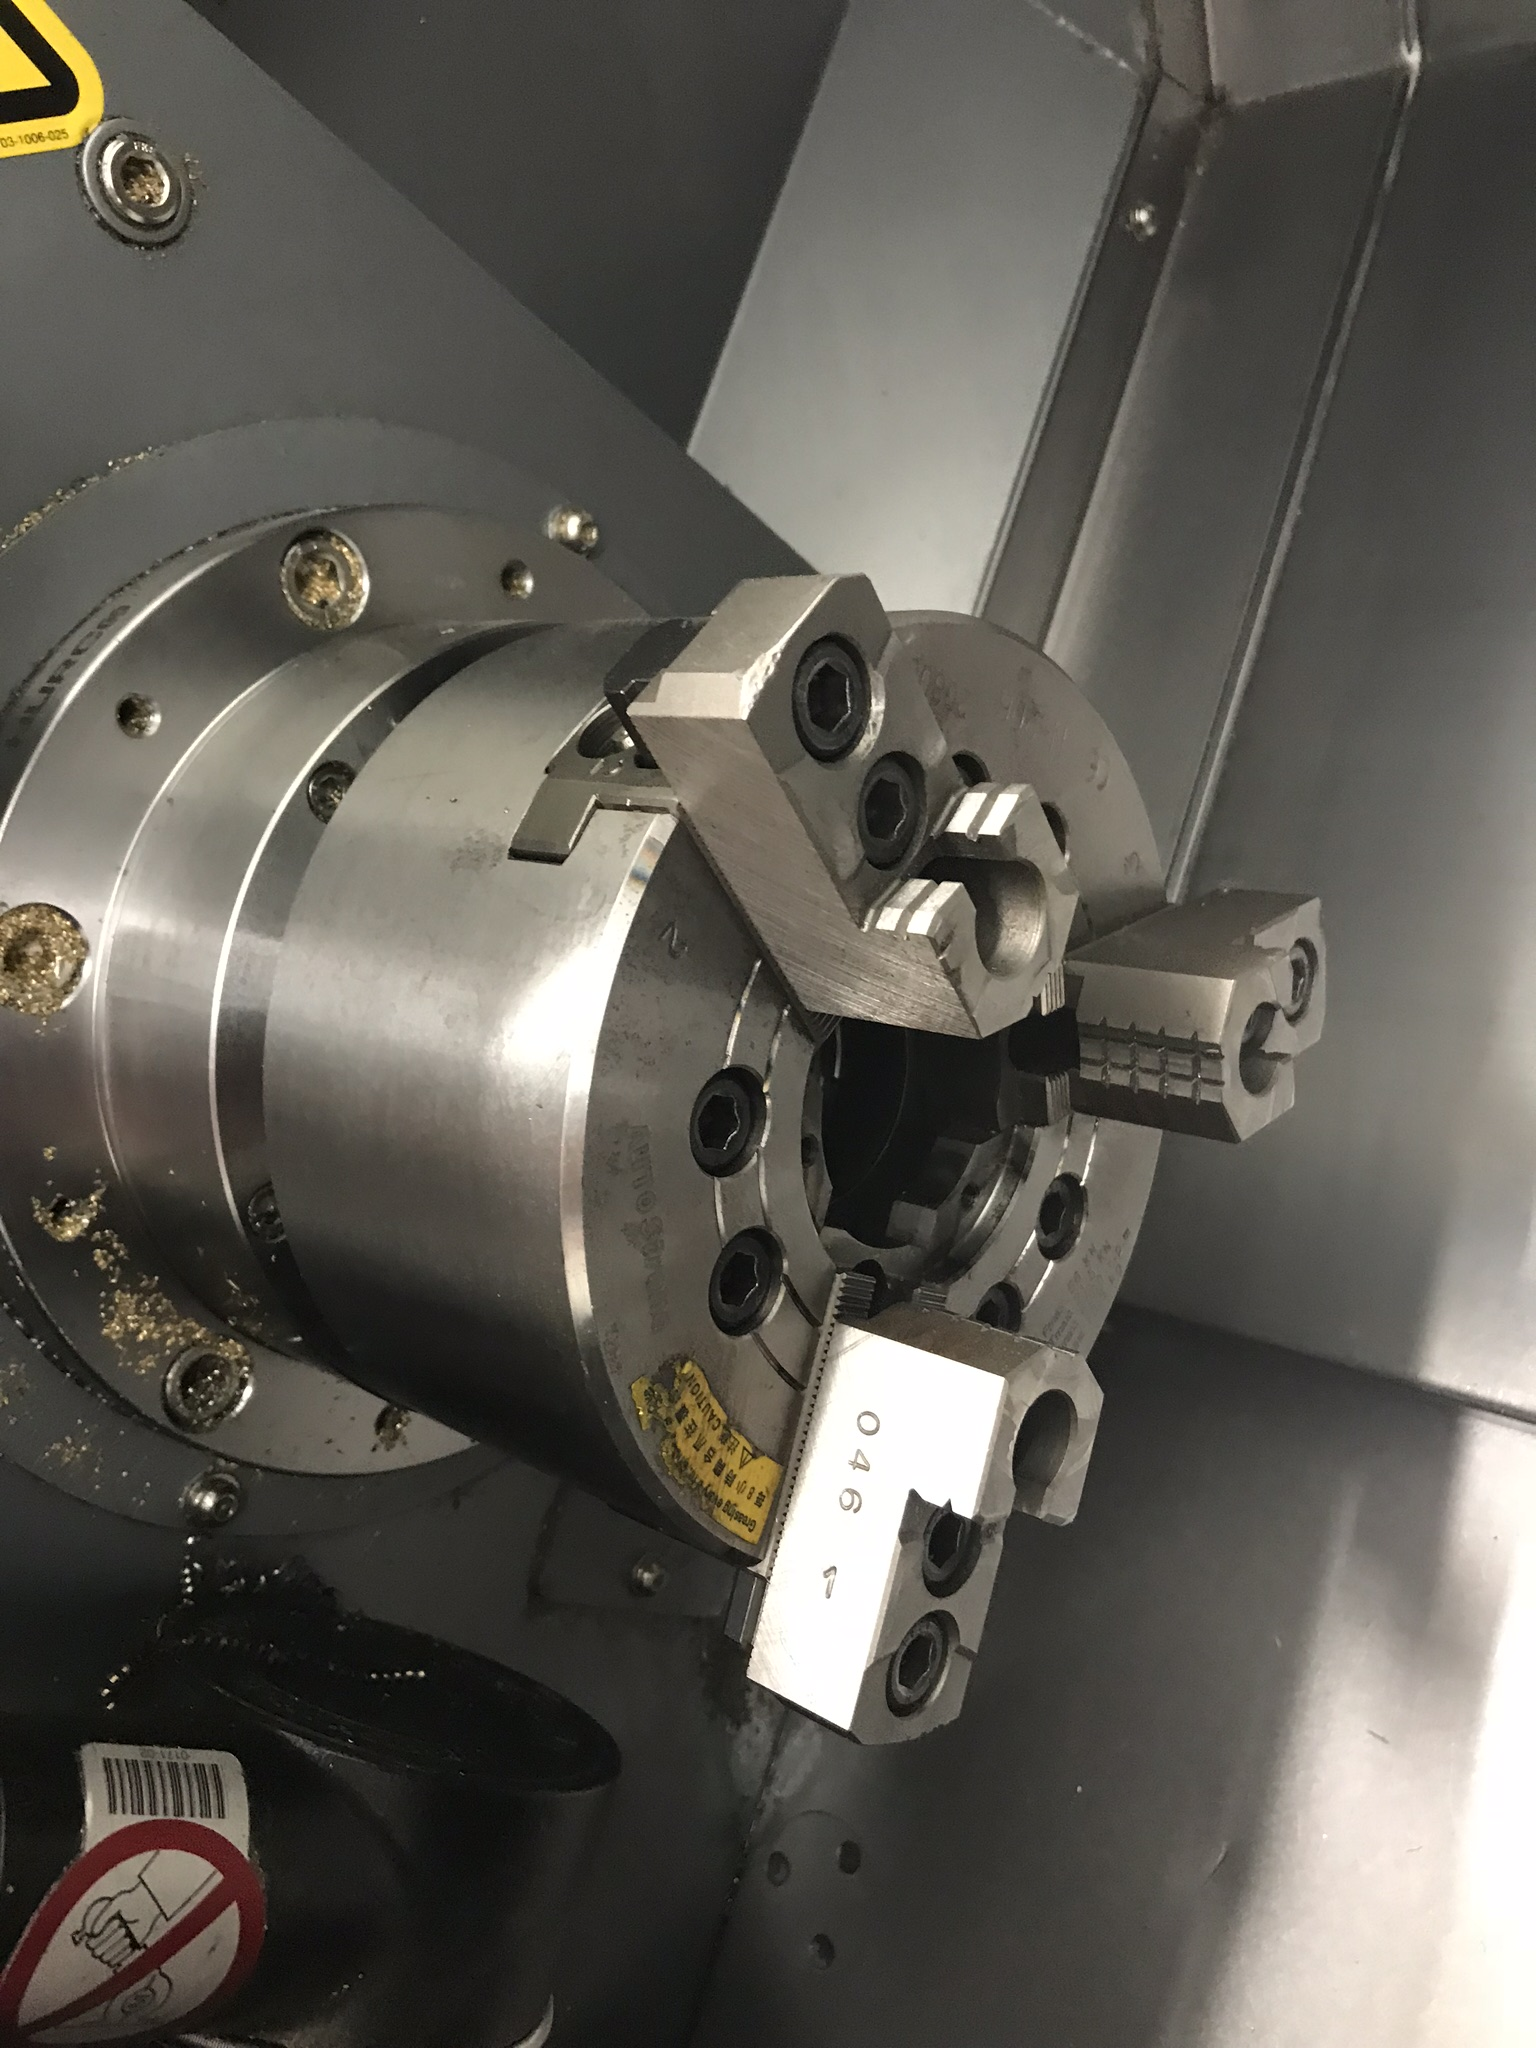 Hurco TM-6i CNC Lathe with HB65-1.2 Barfeed, Rigid Tap, Renishaw Presetter, Chip Conv, 400 Hours! - Image 6 of 16